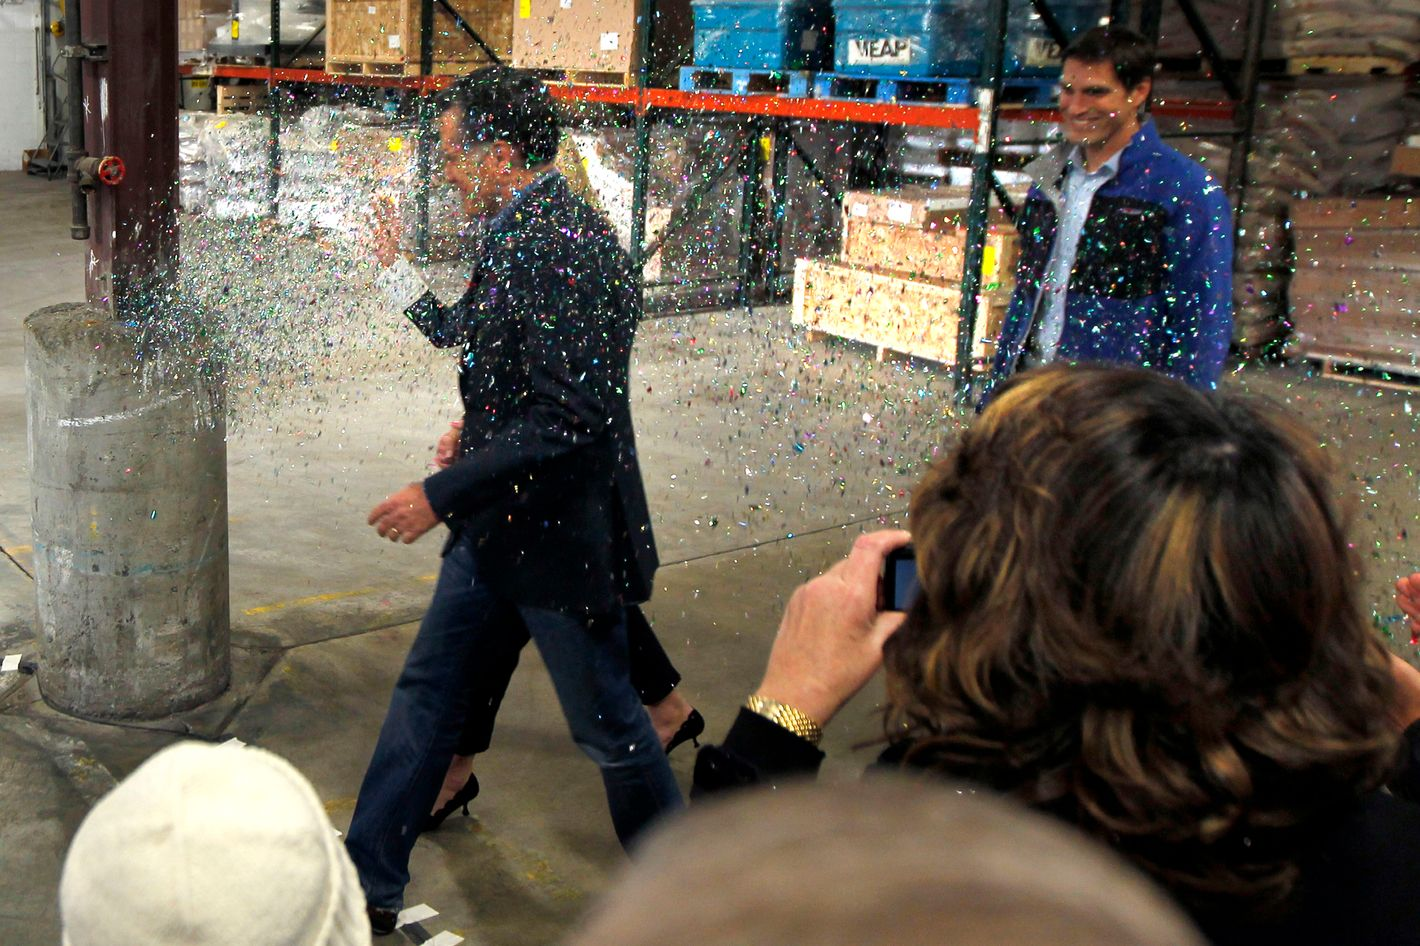 A gay rights activist, not pictured, throws a cup of glitter on Republican presidential candidate, former Massachusetts Gov. Mitt Romney as he walks to the stage at the start of a campaign rally in Eagan, Minn., Wednesday, Feb. 1, 2012. (AP Photo/Gerald Herbert)